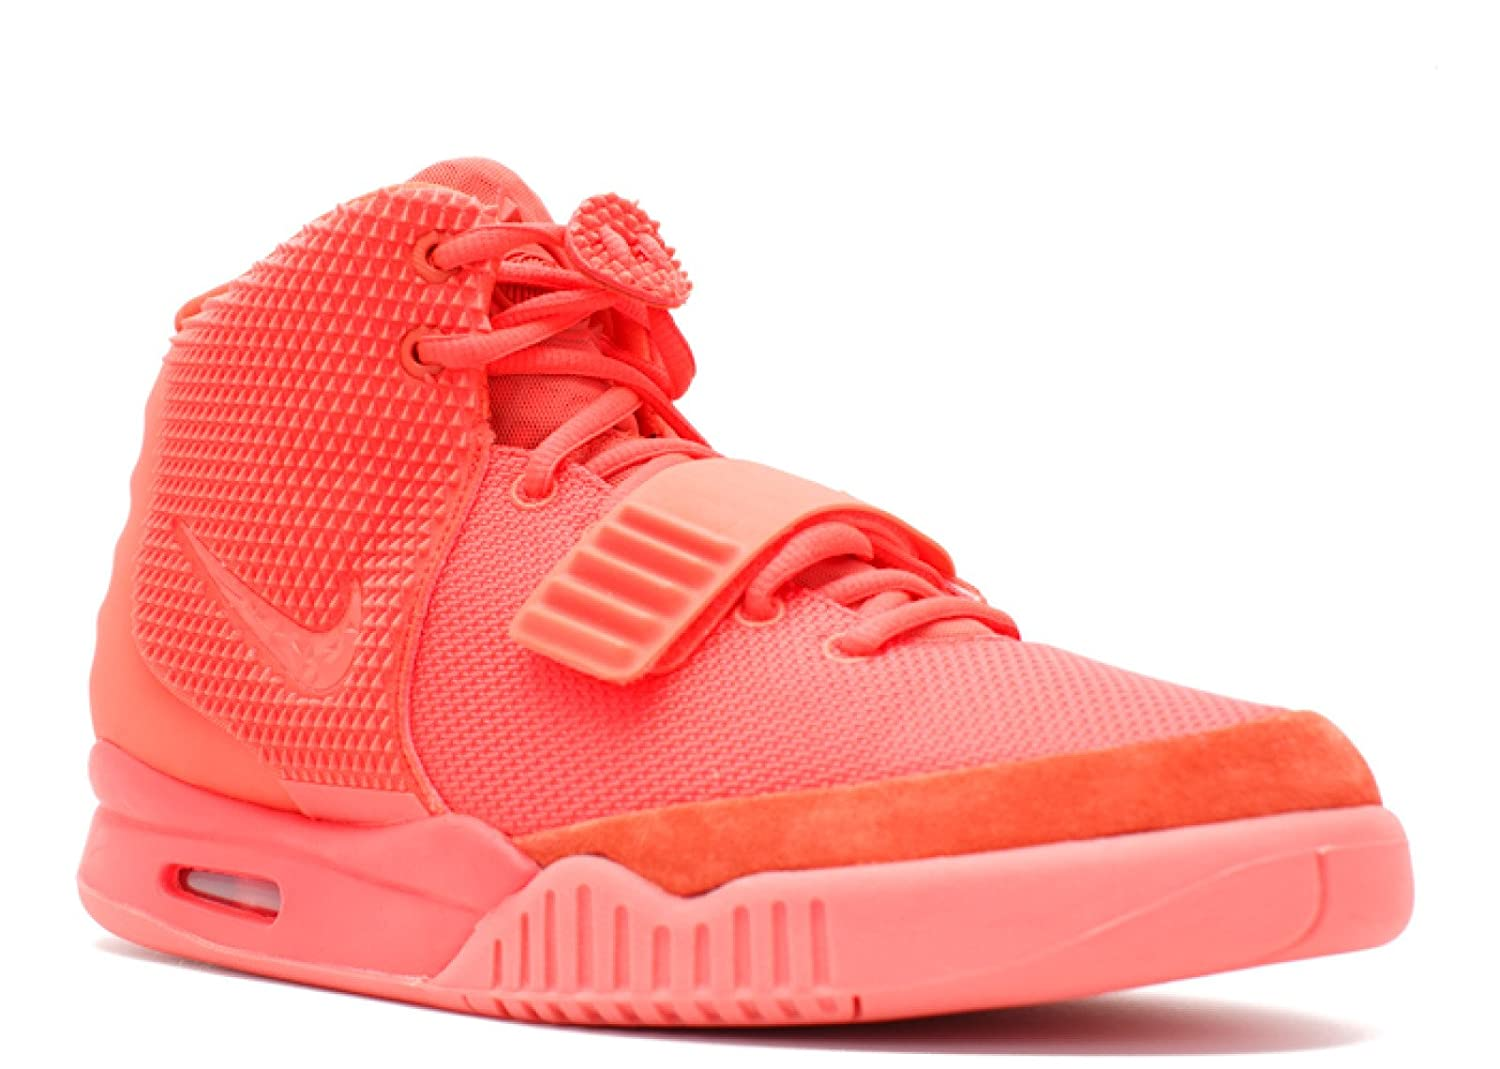 factory authentic c0eb8 f3fe7 Amazon.com   NIKE AIR Yeezy 2 SP  RED October  - 508214-660   Basketball